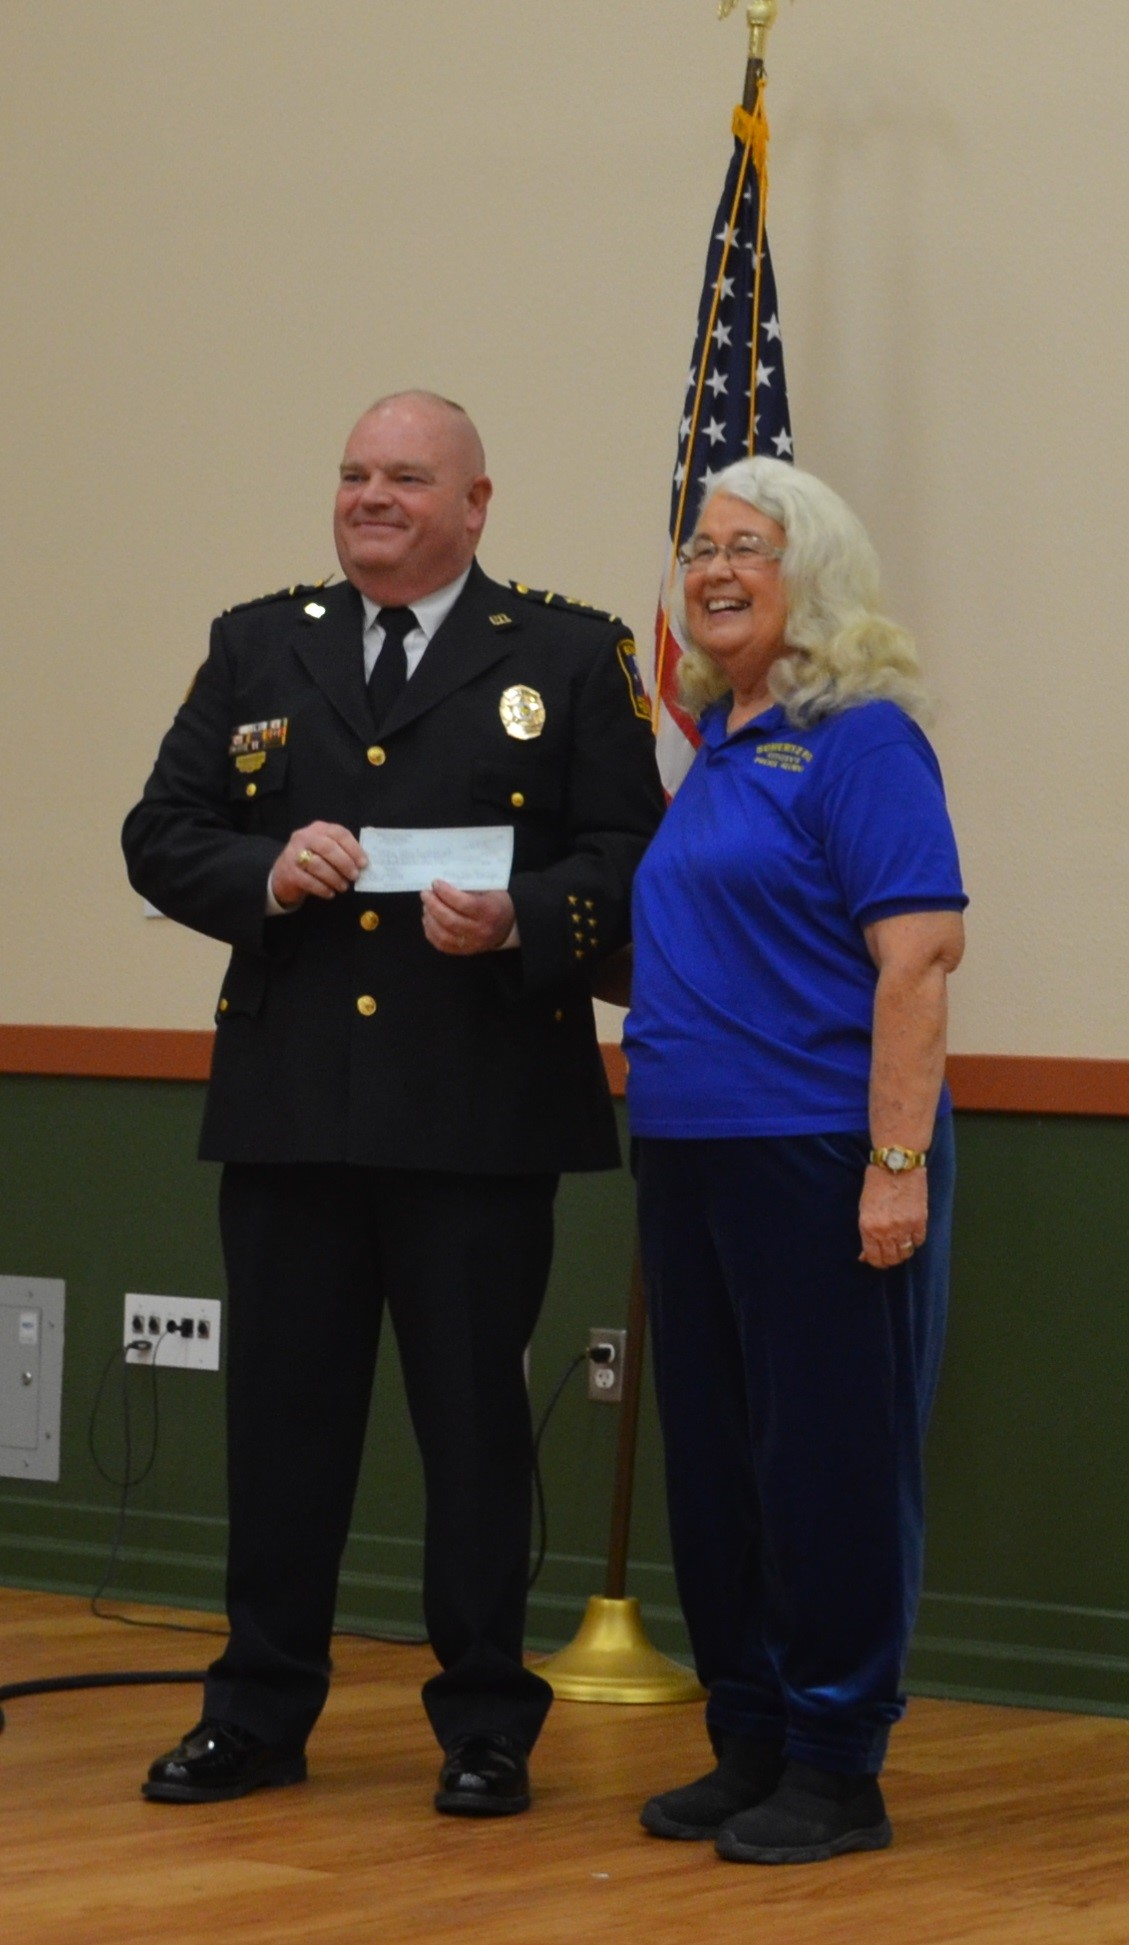 Chief Vice President Presented with Check